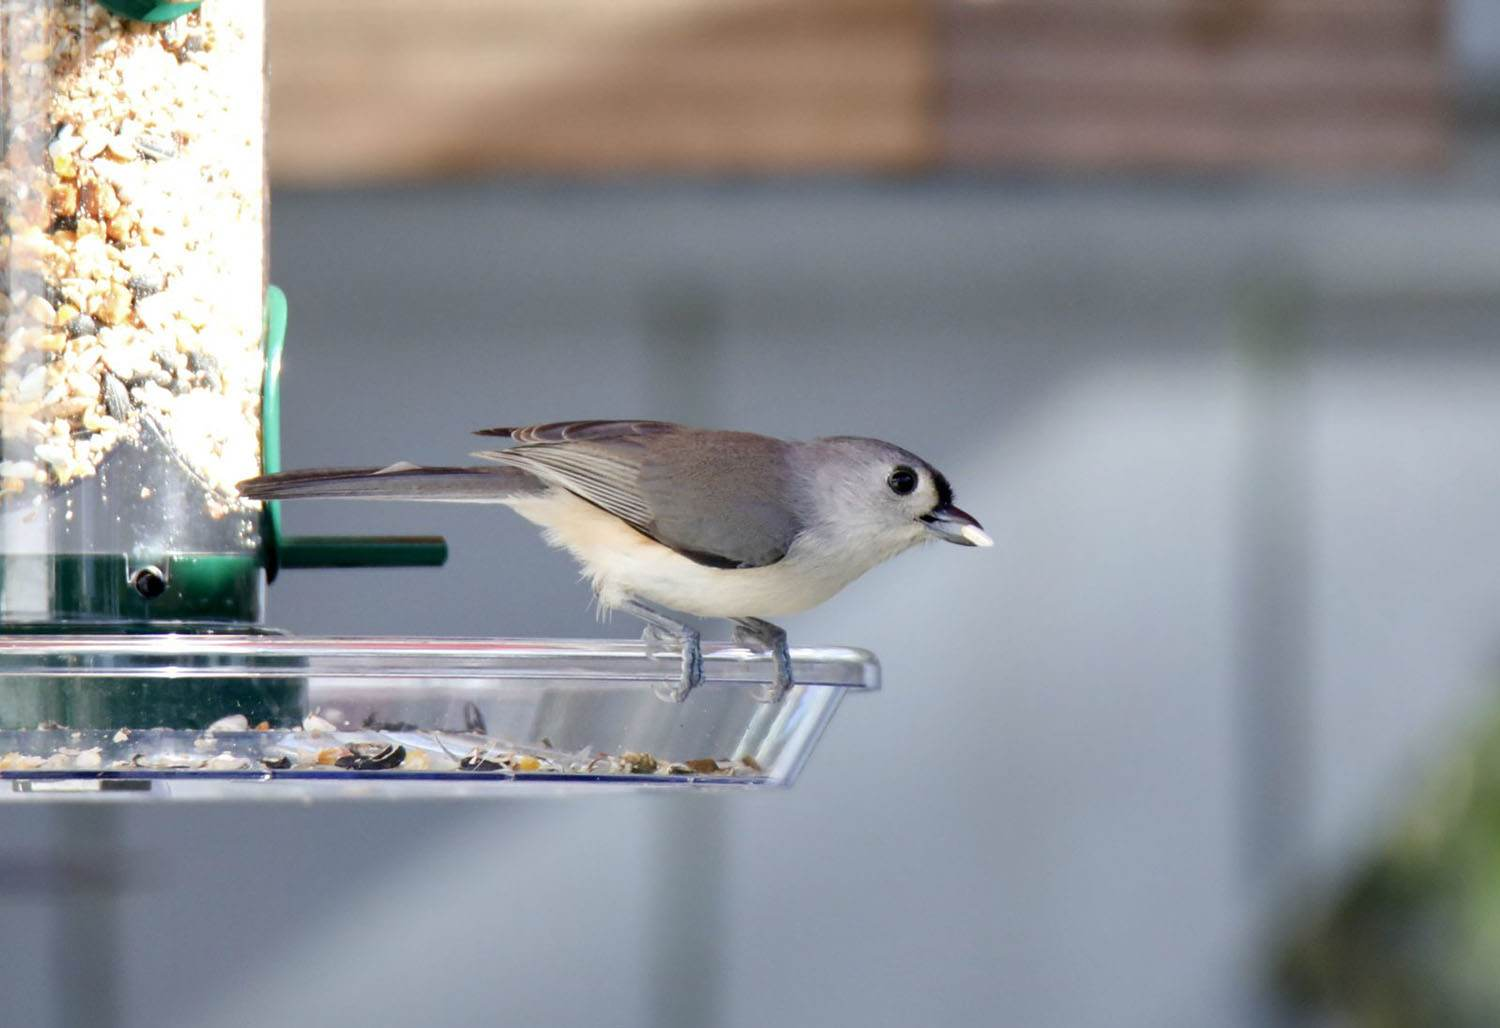 Tufted Titmouse by suzannesullins